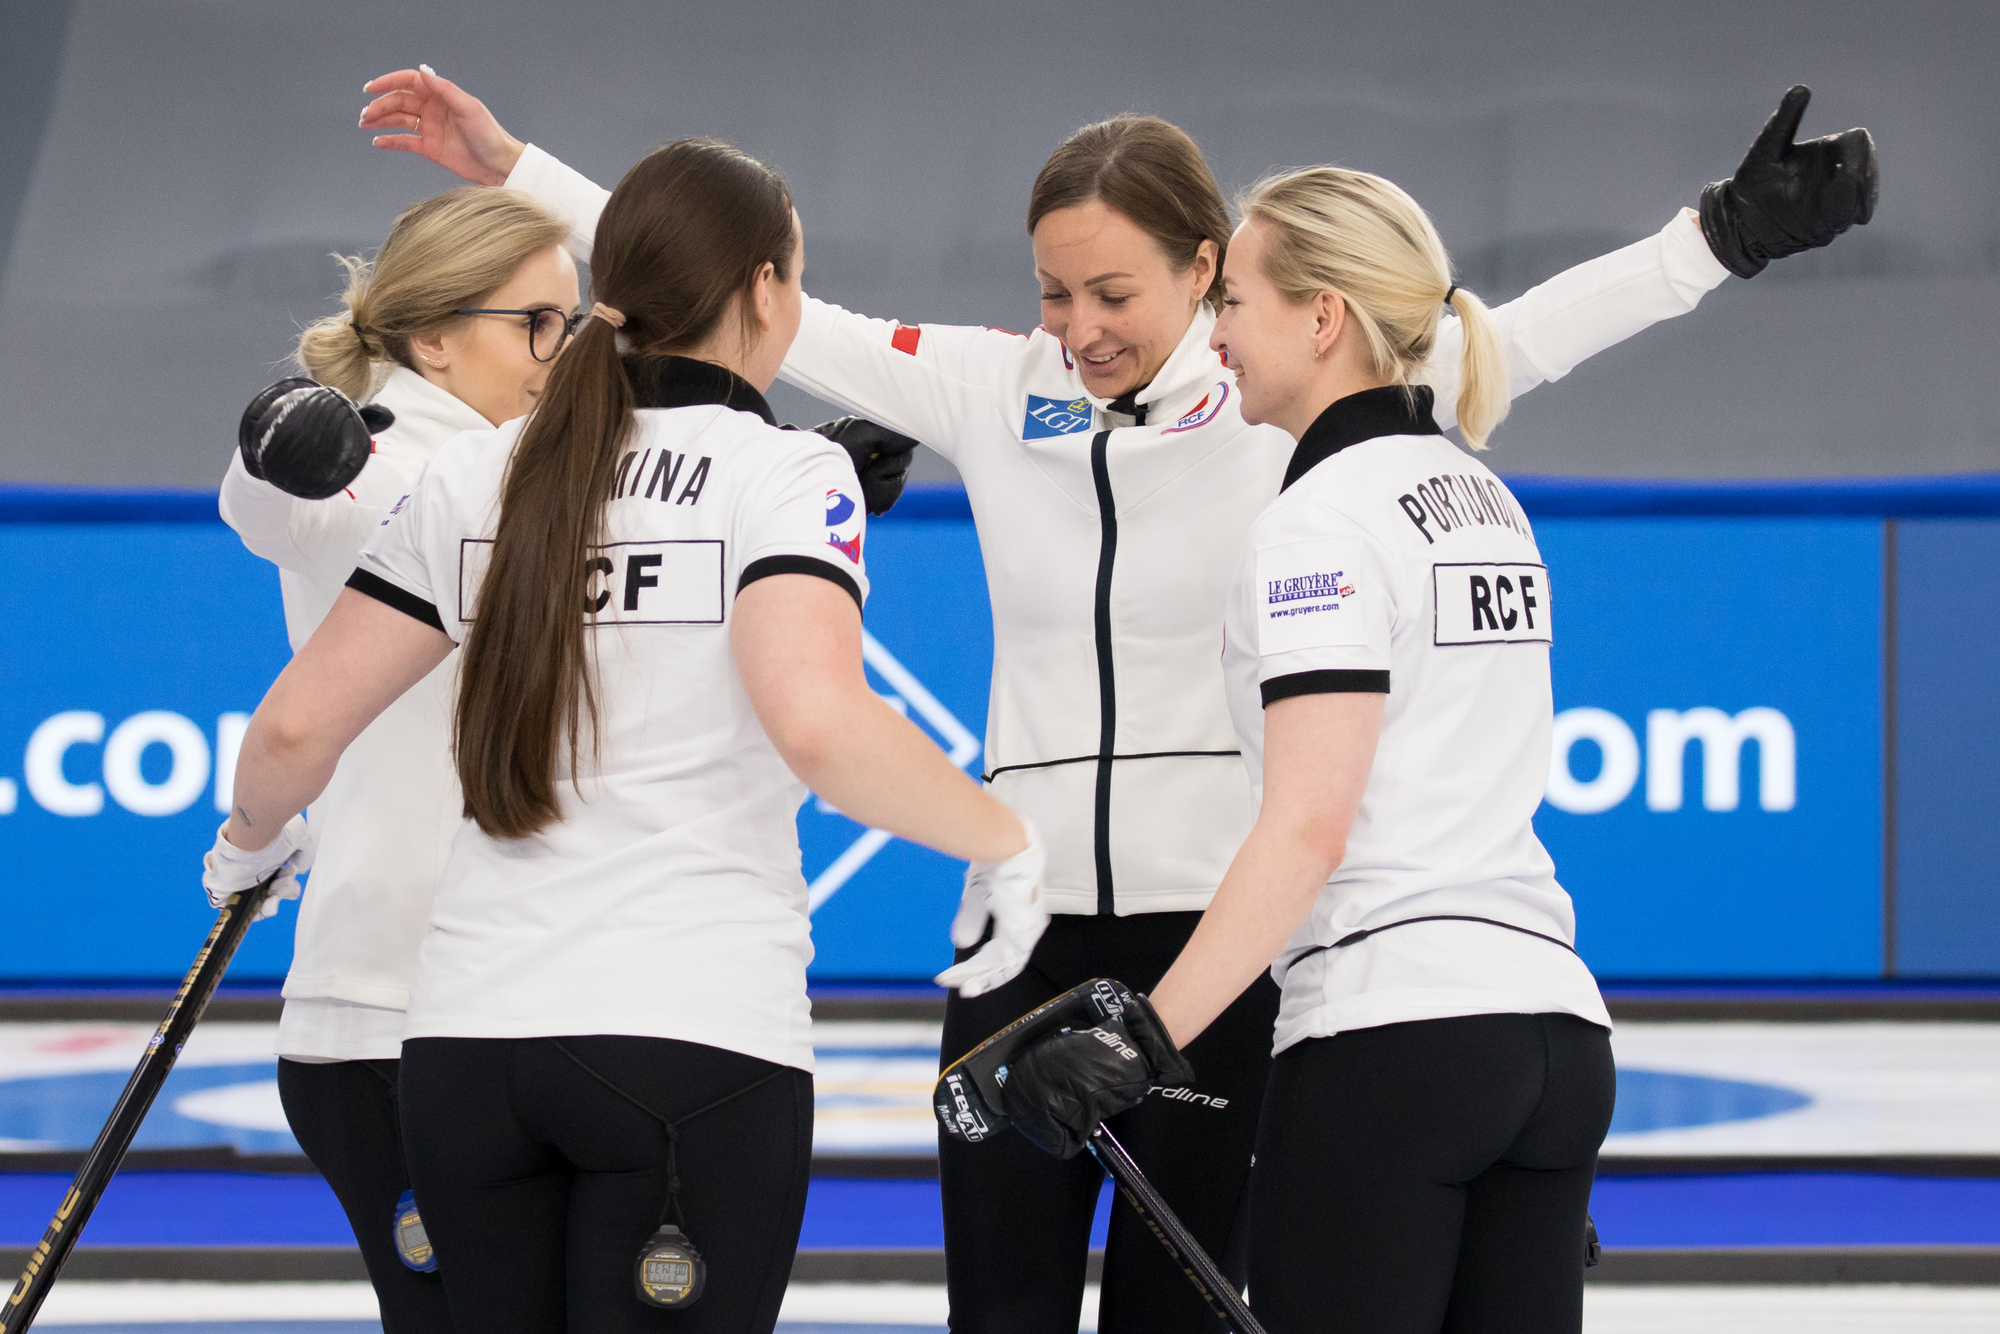 RCF secure play-off place and Olympic Qualification despite loss - World Curling Federation